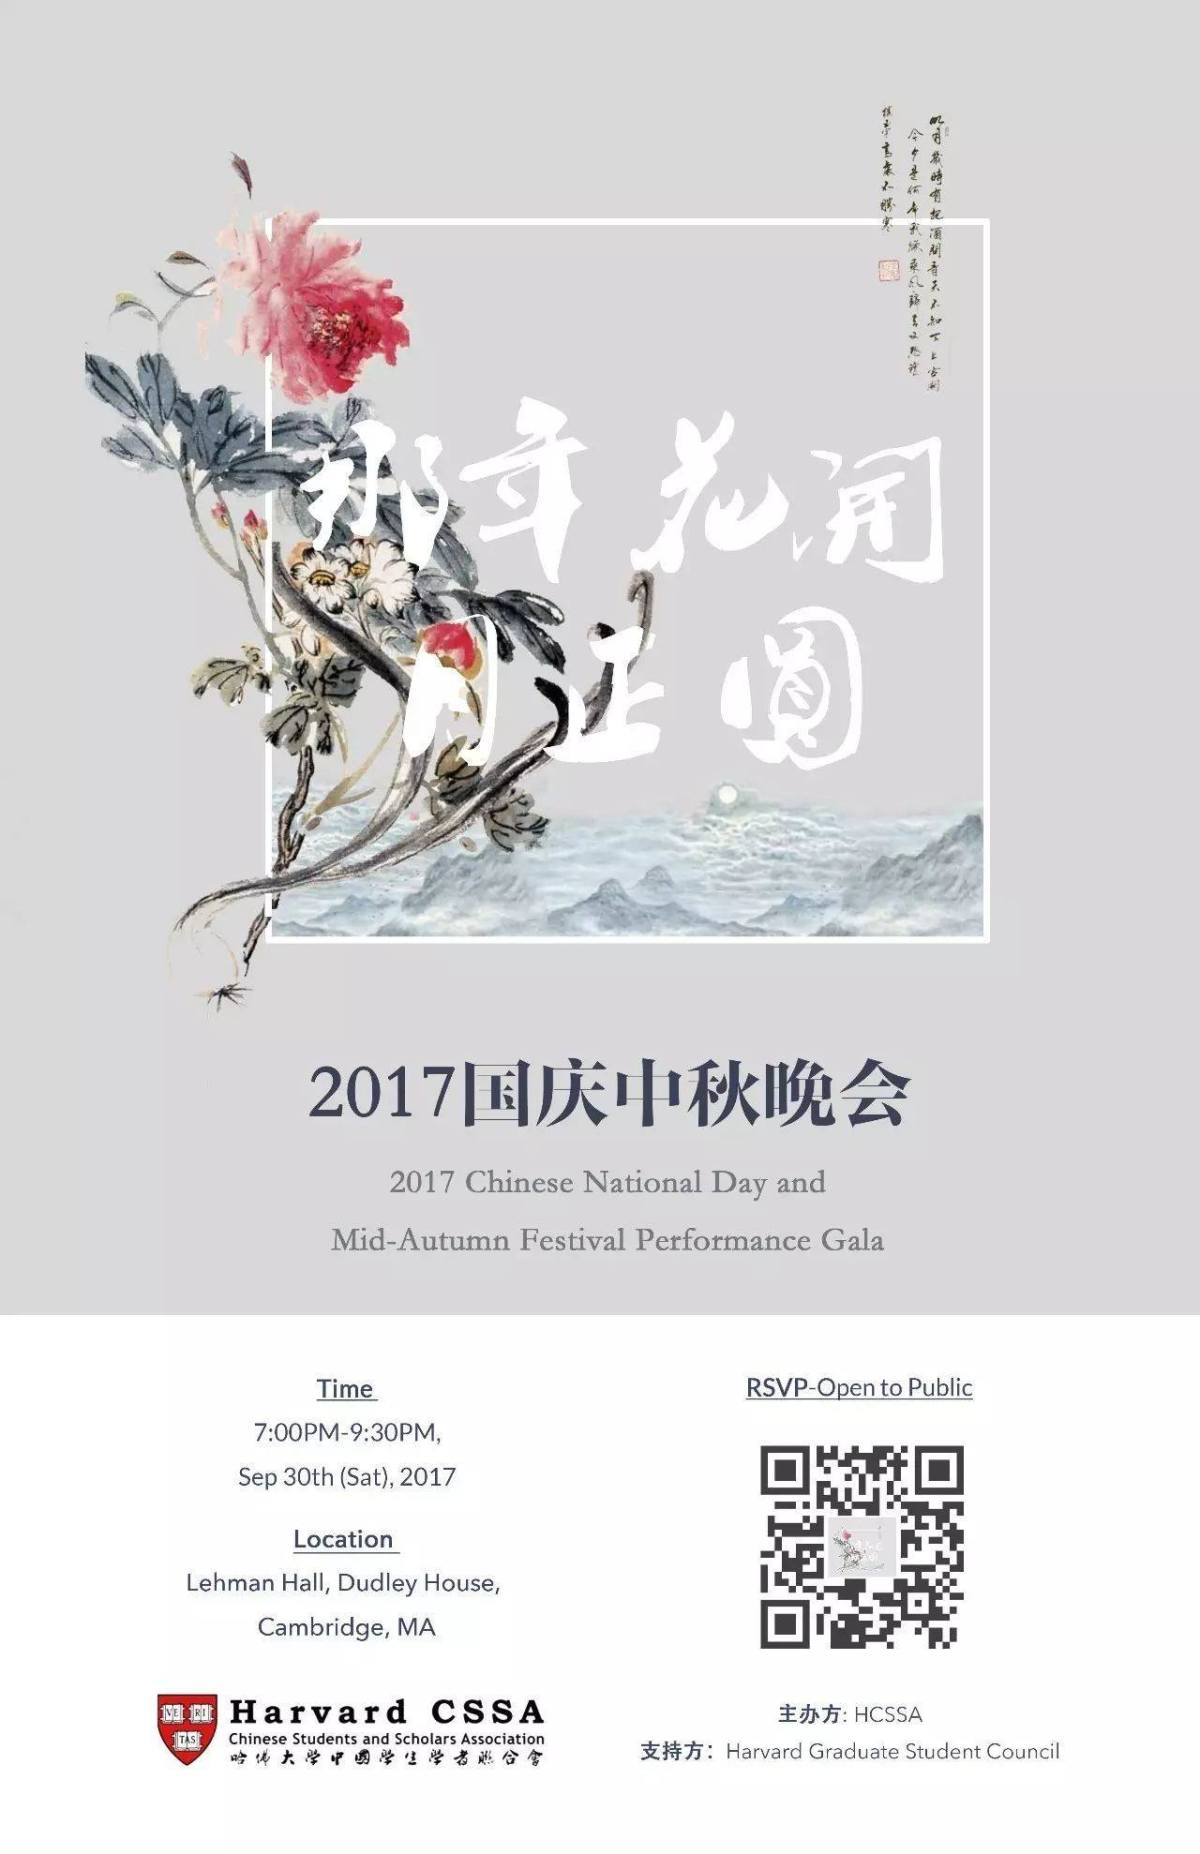 那年花开月正圆 2017 HCSSA Chinese National Day & Mid-Autumn Festival